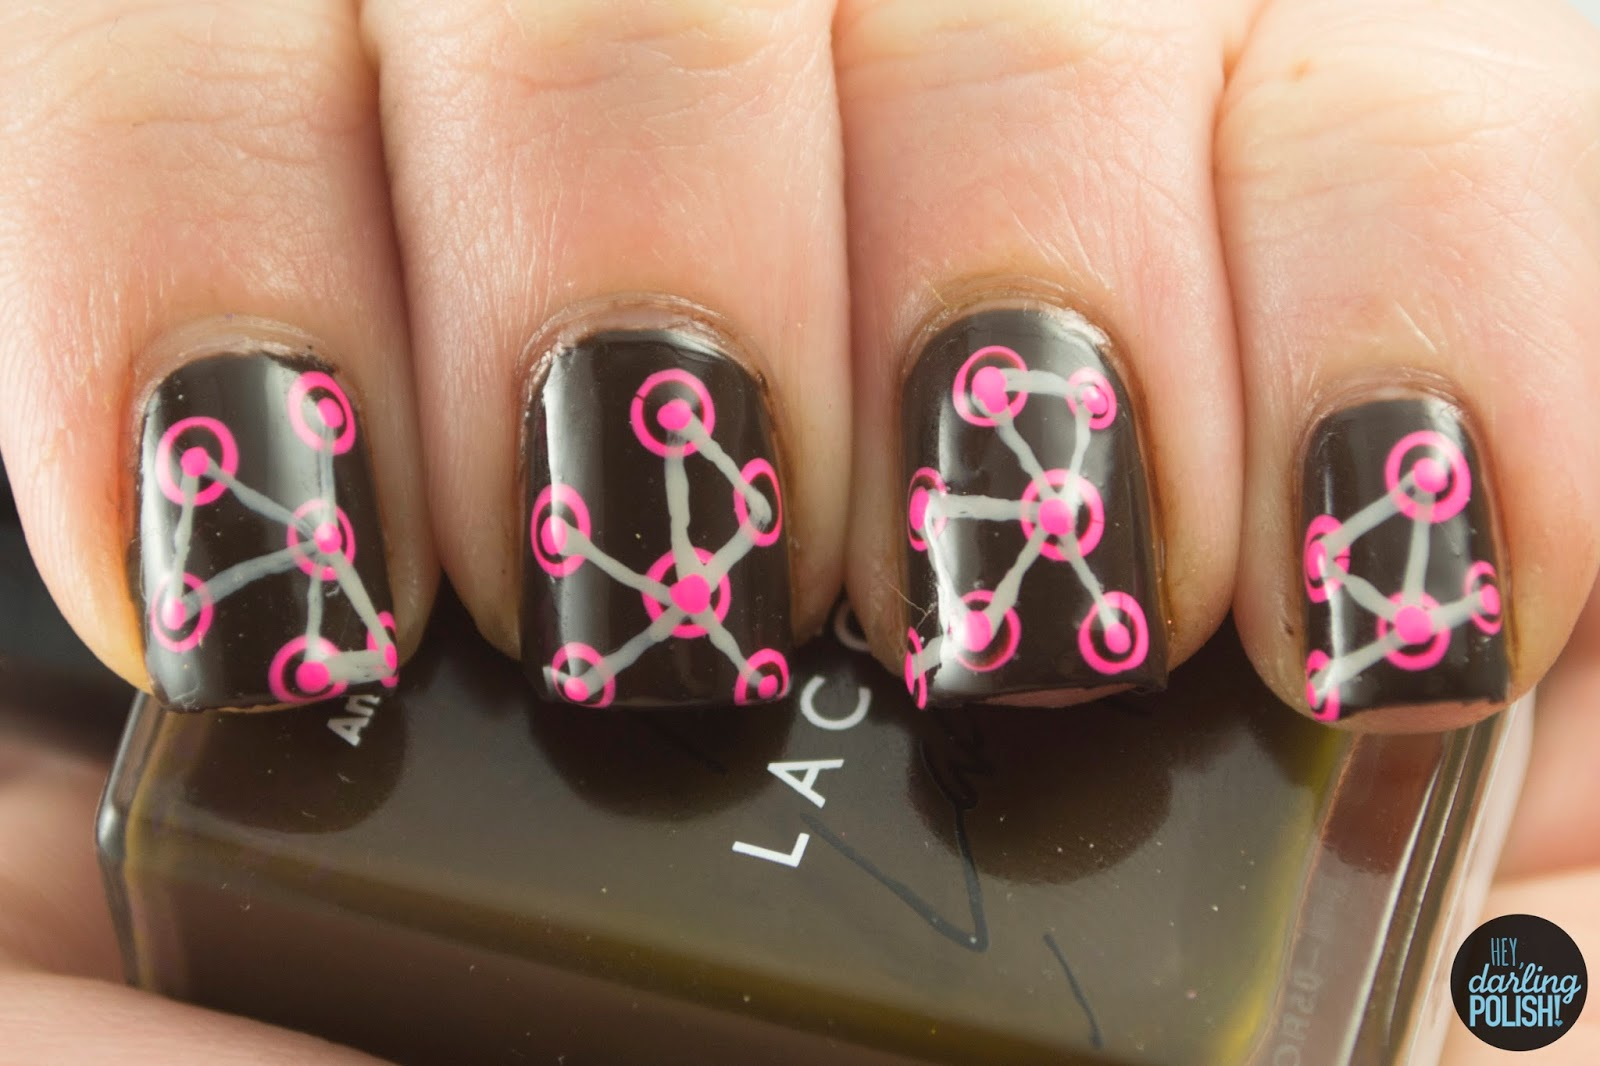 nails, nail art, nail polish, polish, brown, pink, grey, pattern, hey darling polish, tic, tri polish challenge